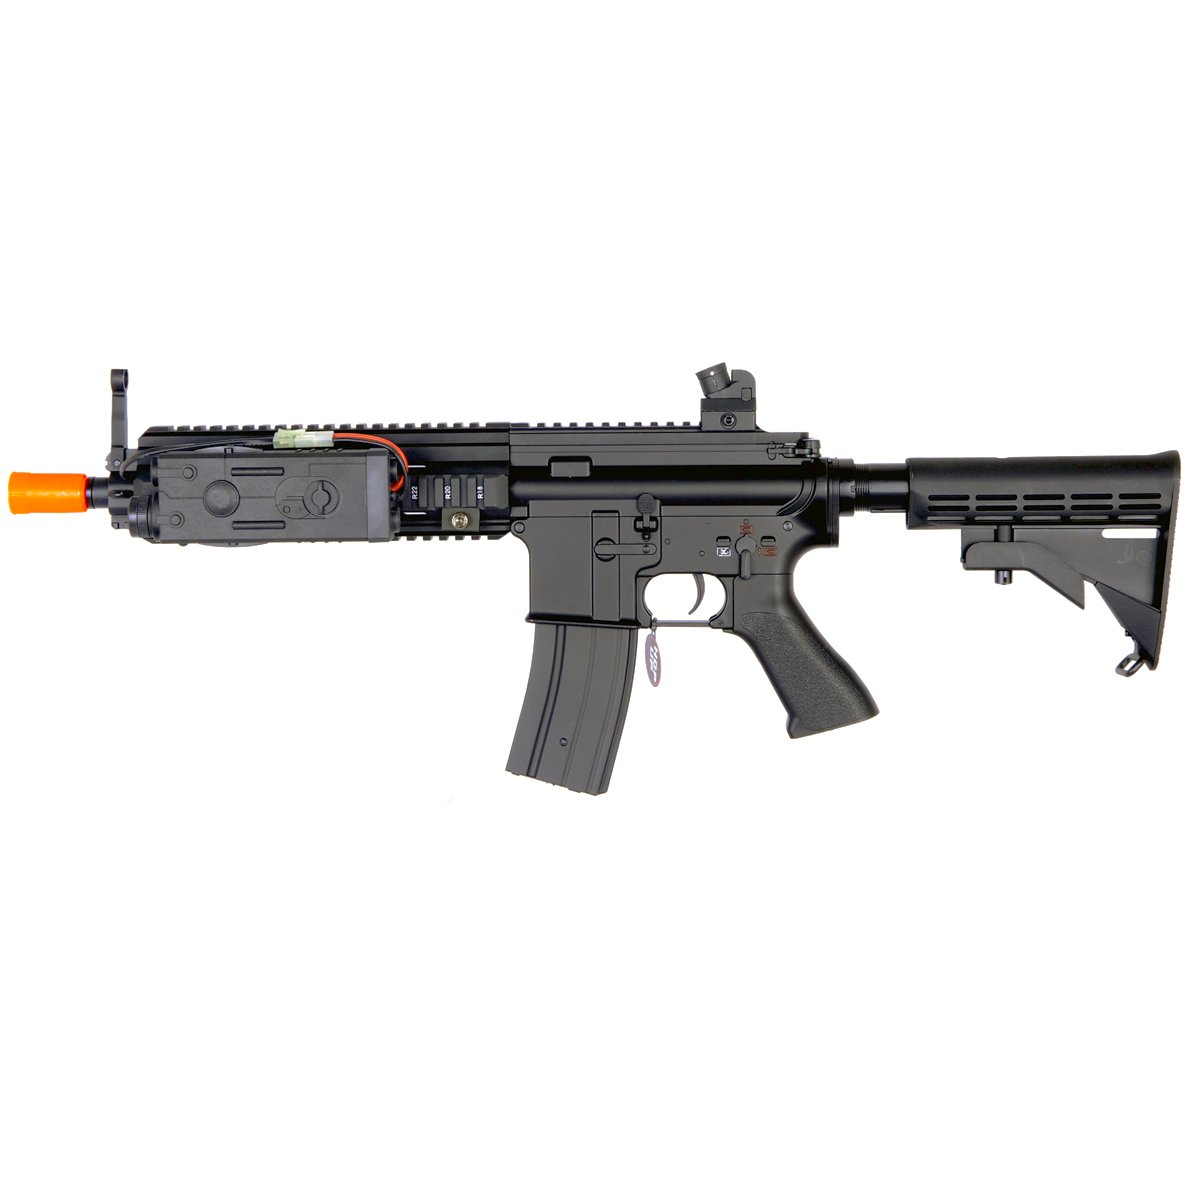 MetalTac JG F6622 614 Electric Airsoft Gun with Rail Mounting System, Full Metal Body, Battery PEQ Box, Metal Gearbox Version 2, Auto AEG, Upgraded Powerful Spring 410 Fps with .20g BBs